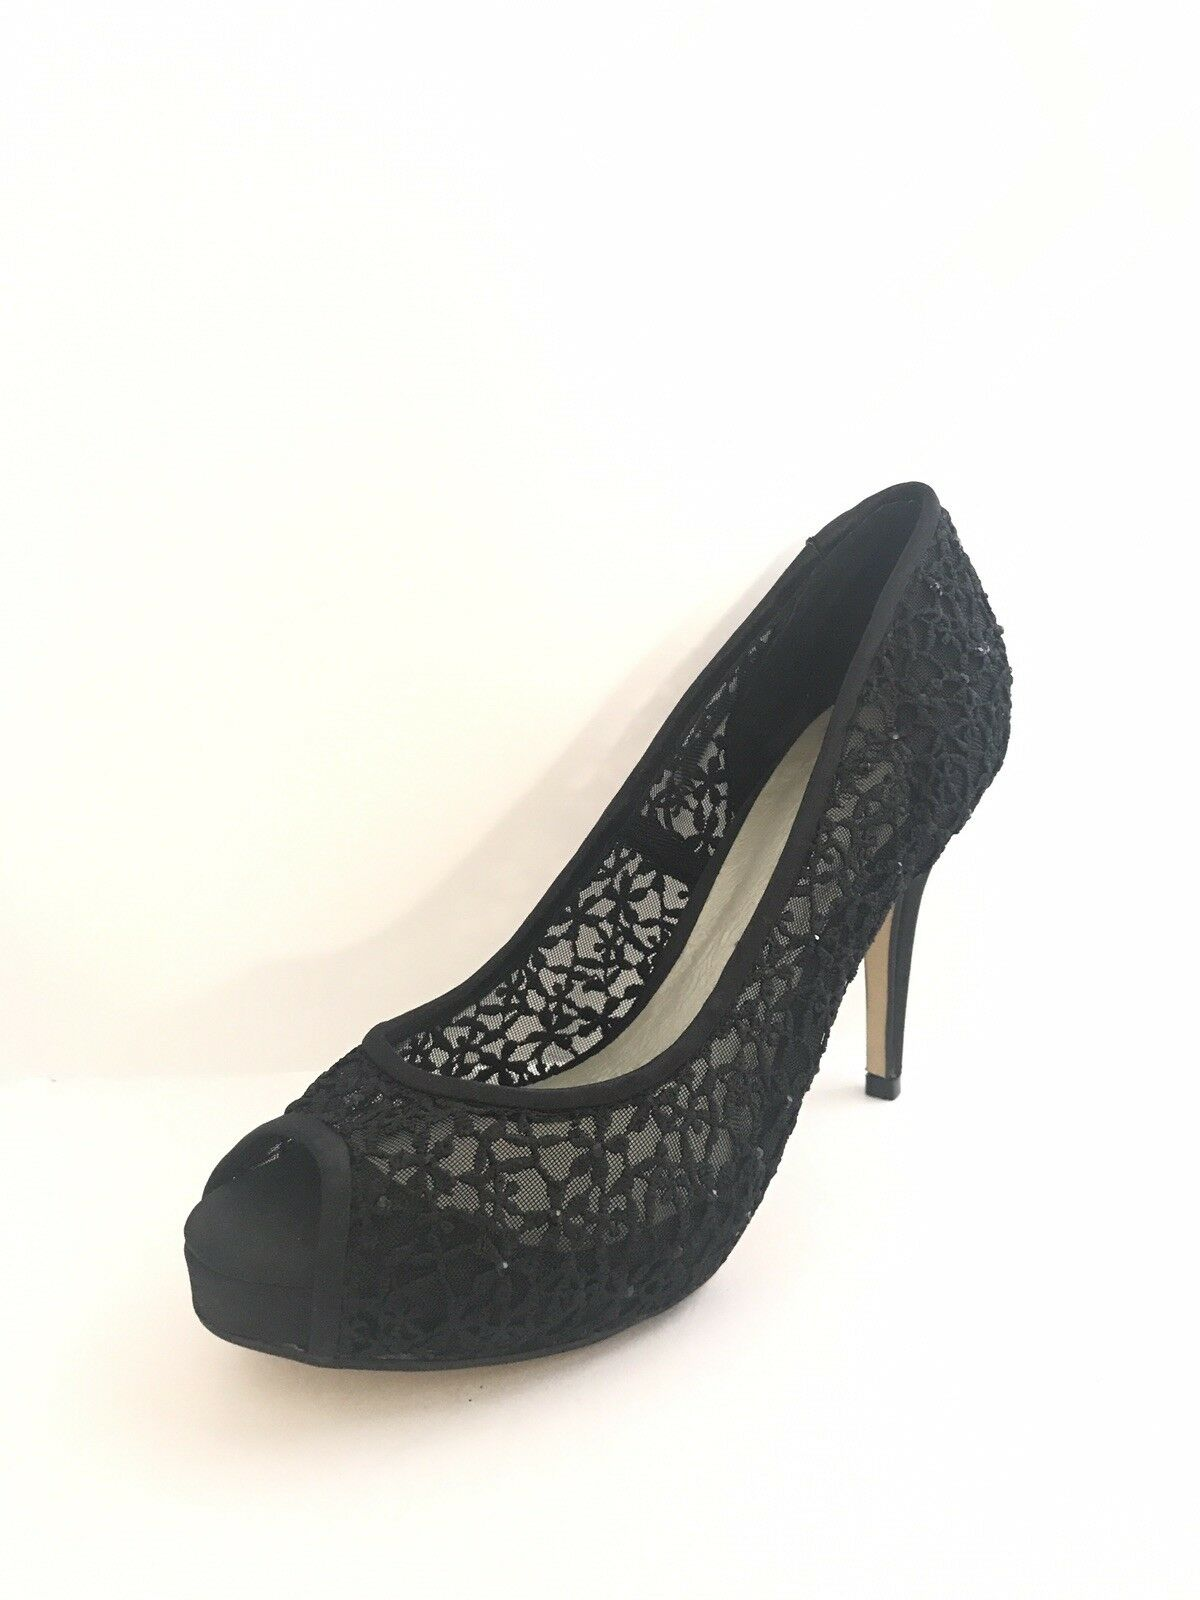 Menbur Women's Black Crochet Open Toe Pumps Size 39 NEW